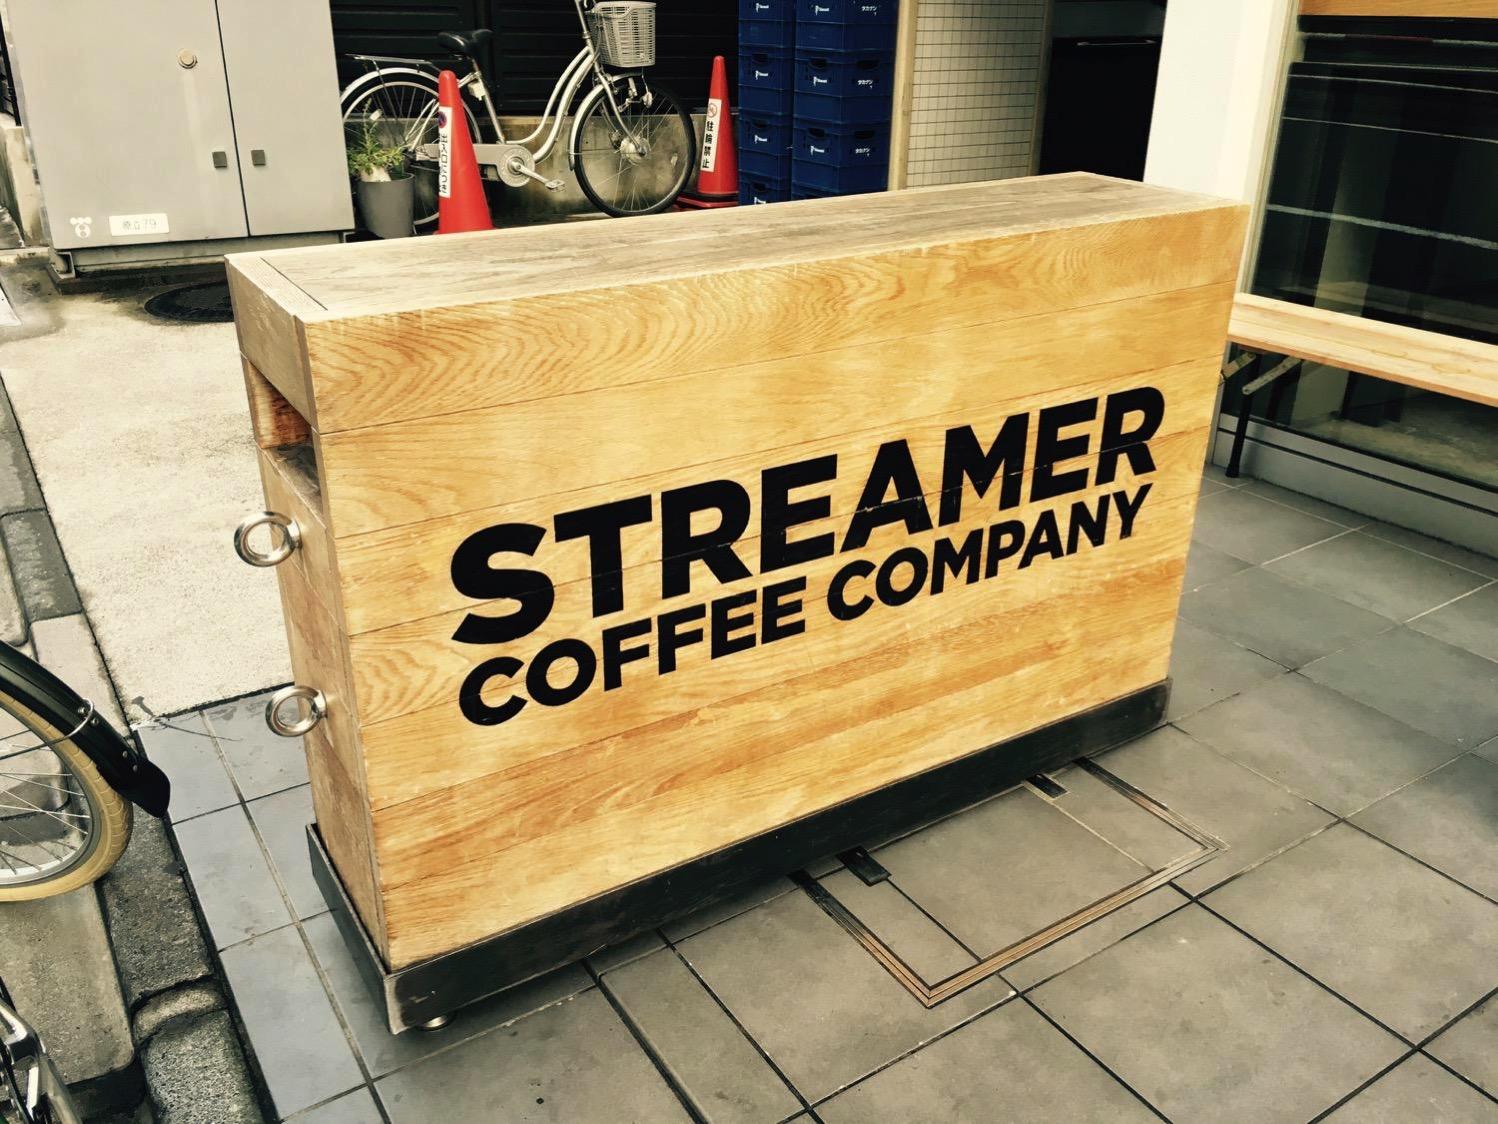 Streamer coffee company3